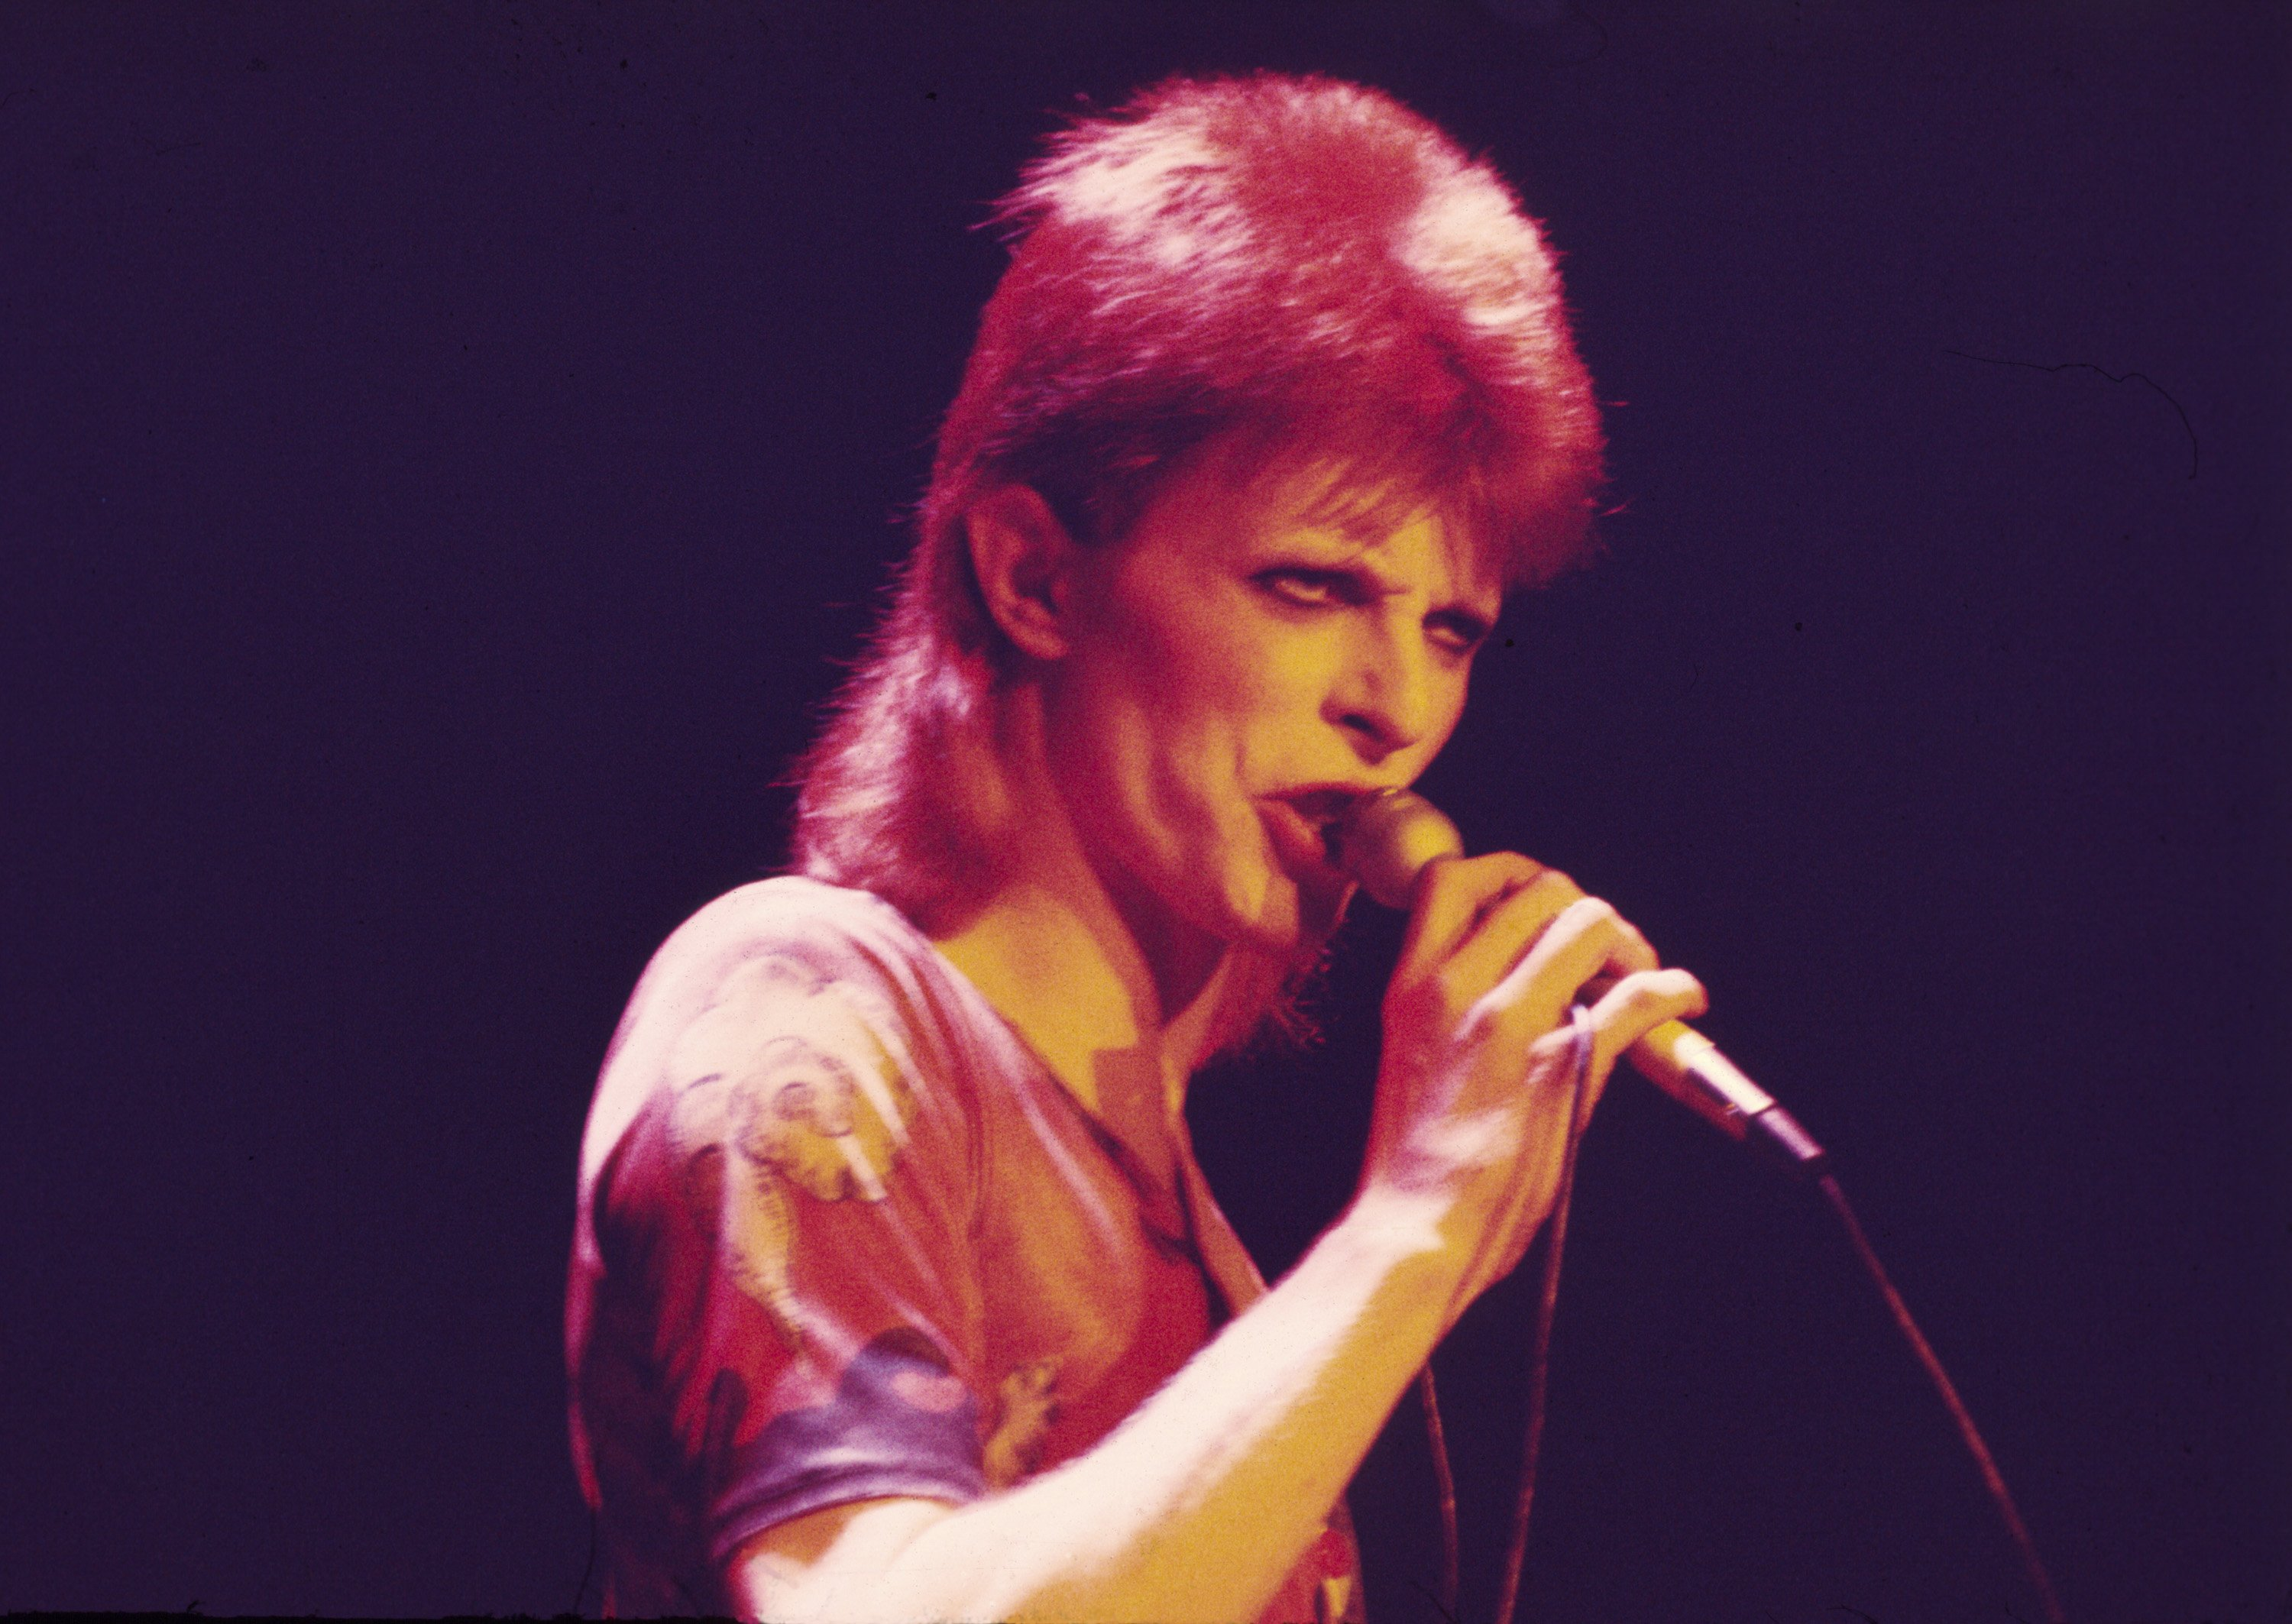 David Bowie performs as Ziggy Stardust, 1973  (Photo by Chris Walter/WireImage)